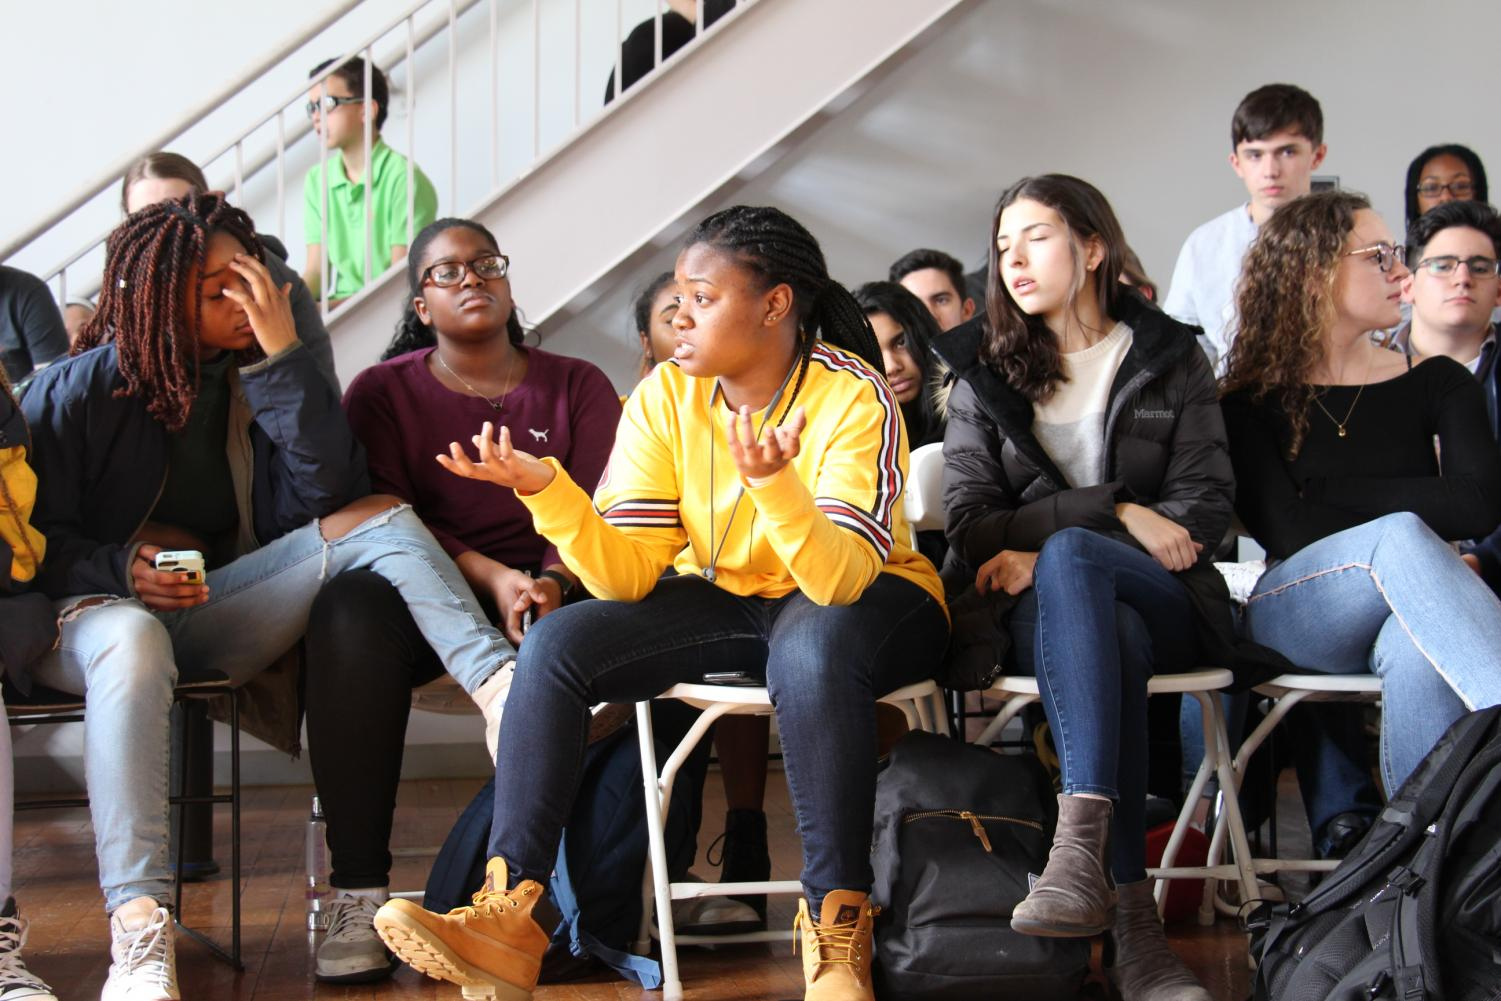 Junior Talisha Ward spoke during the community forum on Wednesday, March 14. The Poly community gathered in the Student Center to debate next steps.